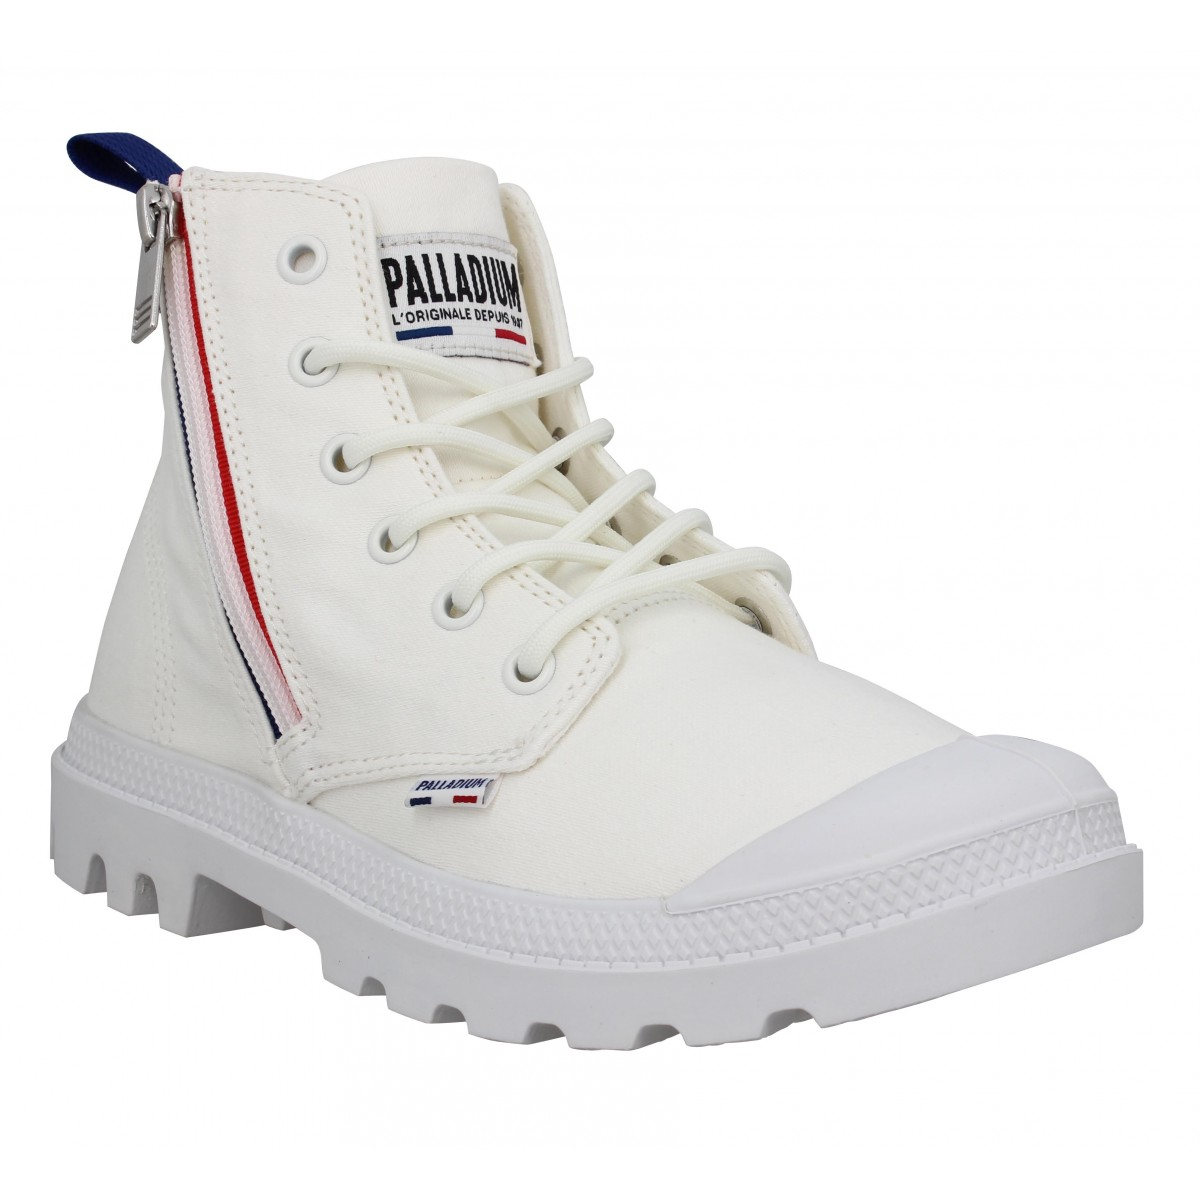 Palladium Femme Pampa French Outzip...